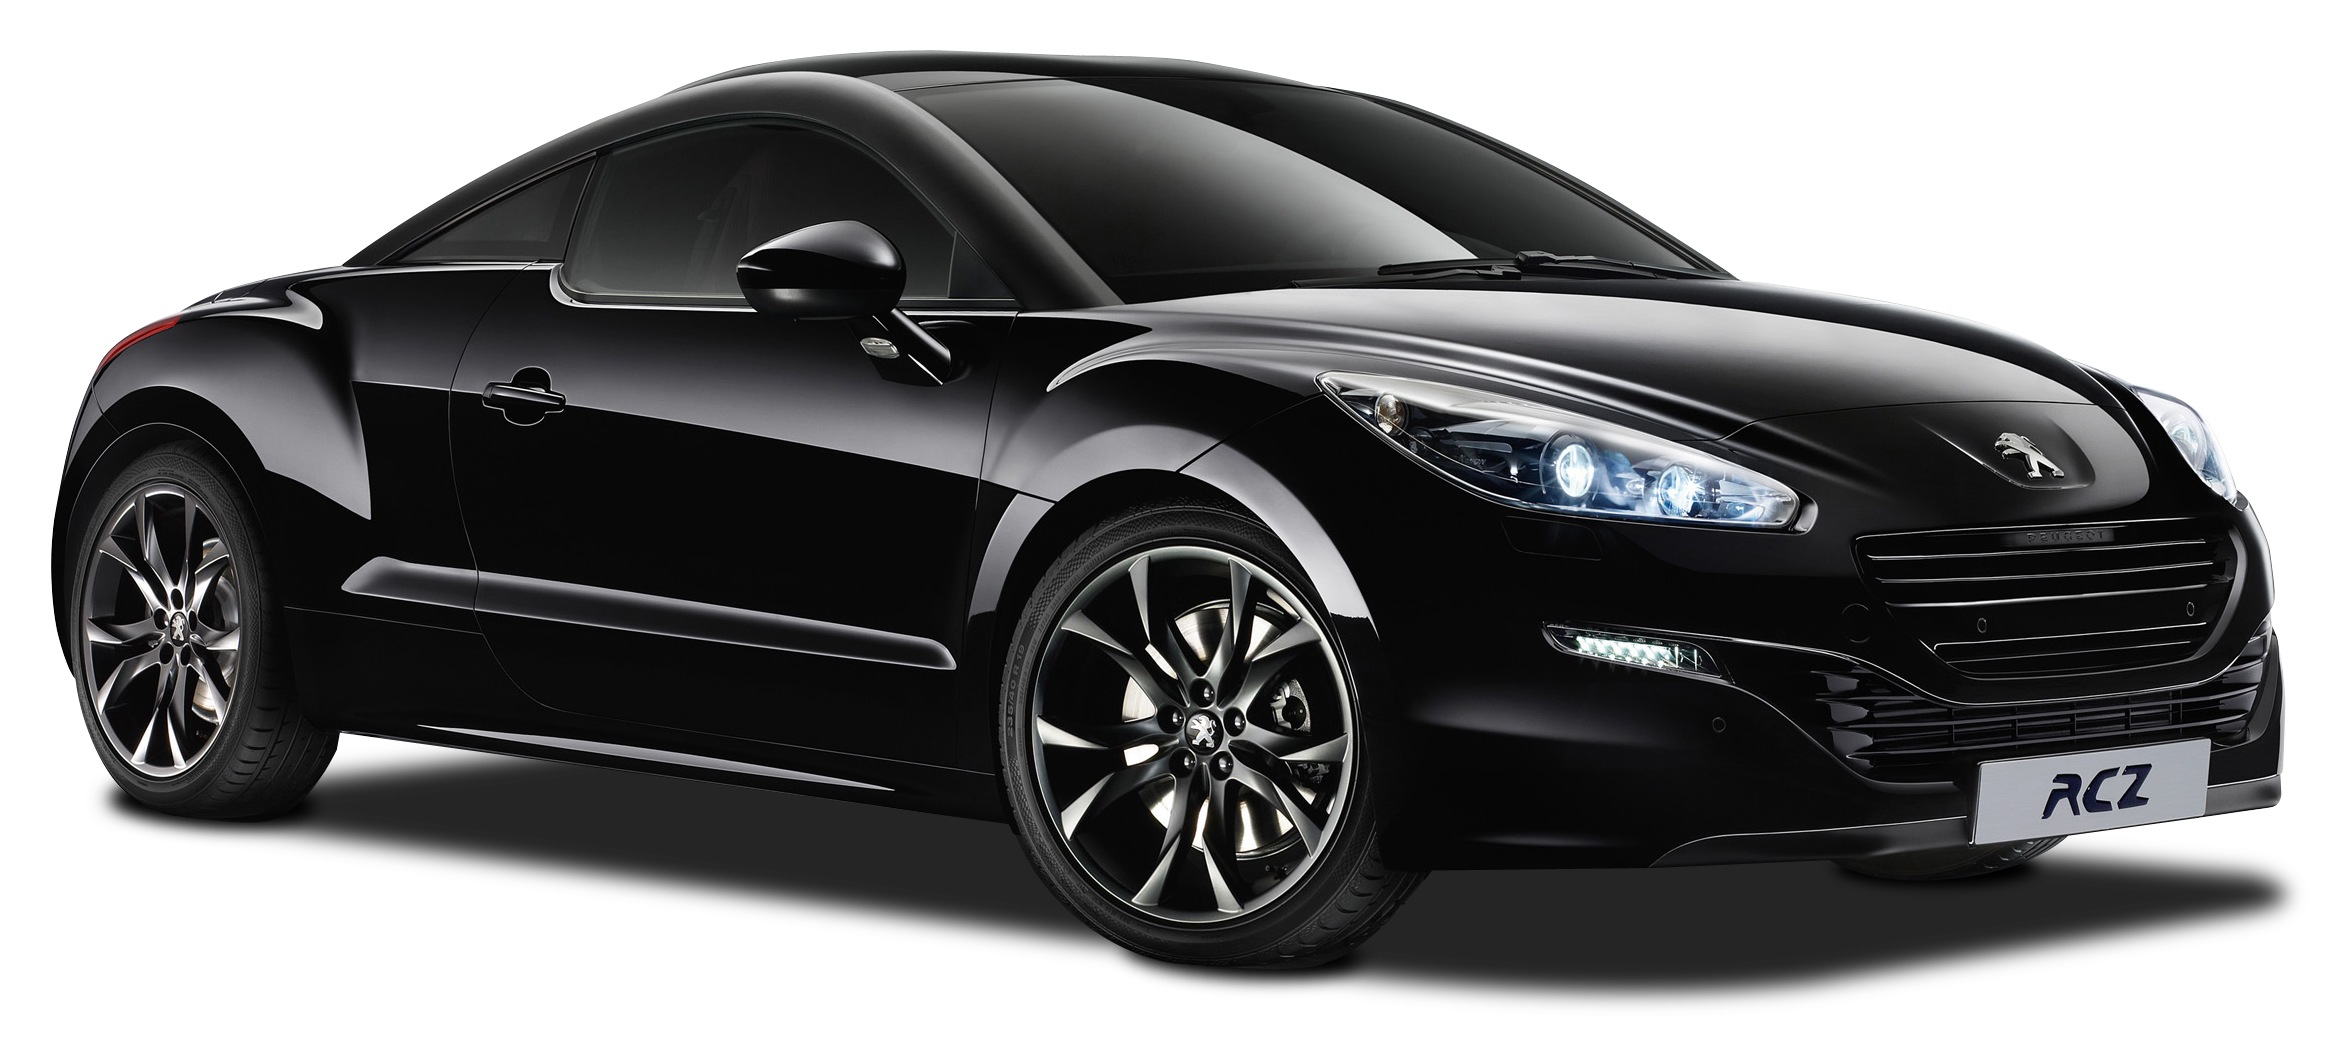 Black Peugeot RCZ Magnetic Car